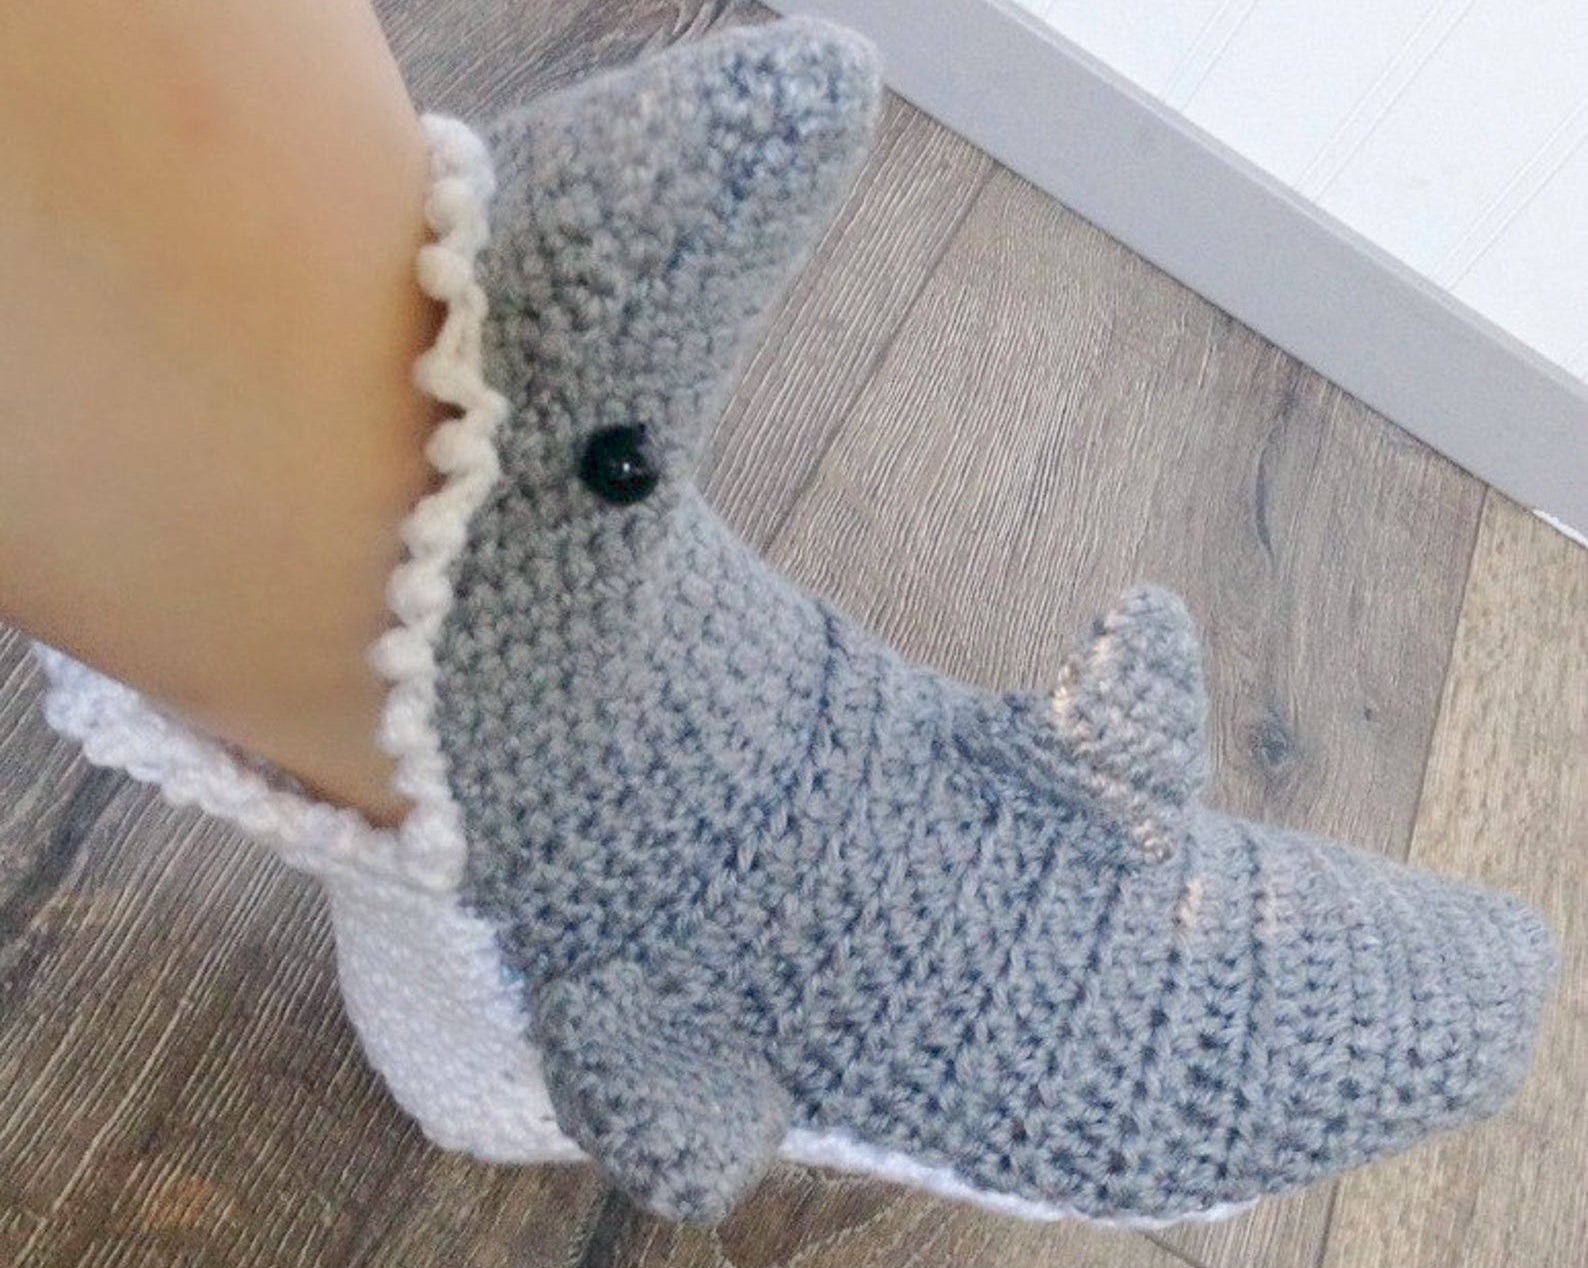 person wearing the crochet shark slipper on their foot